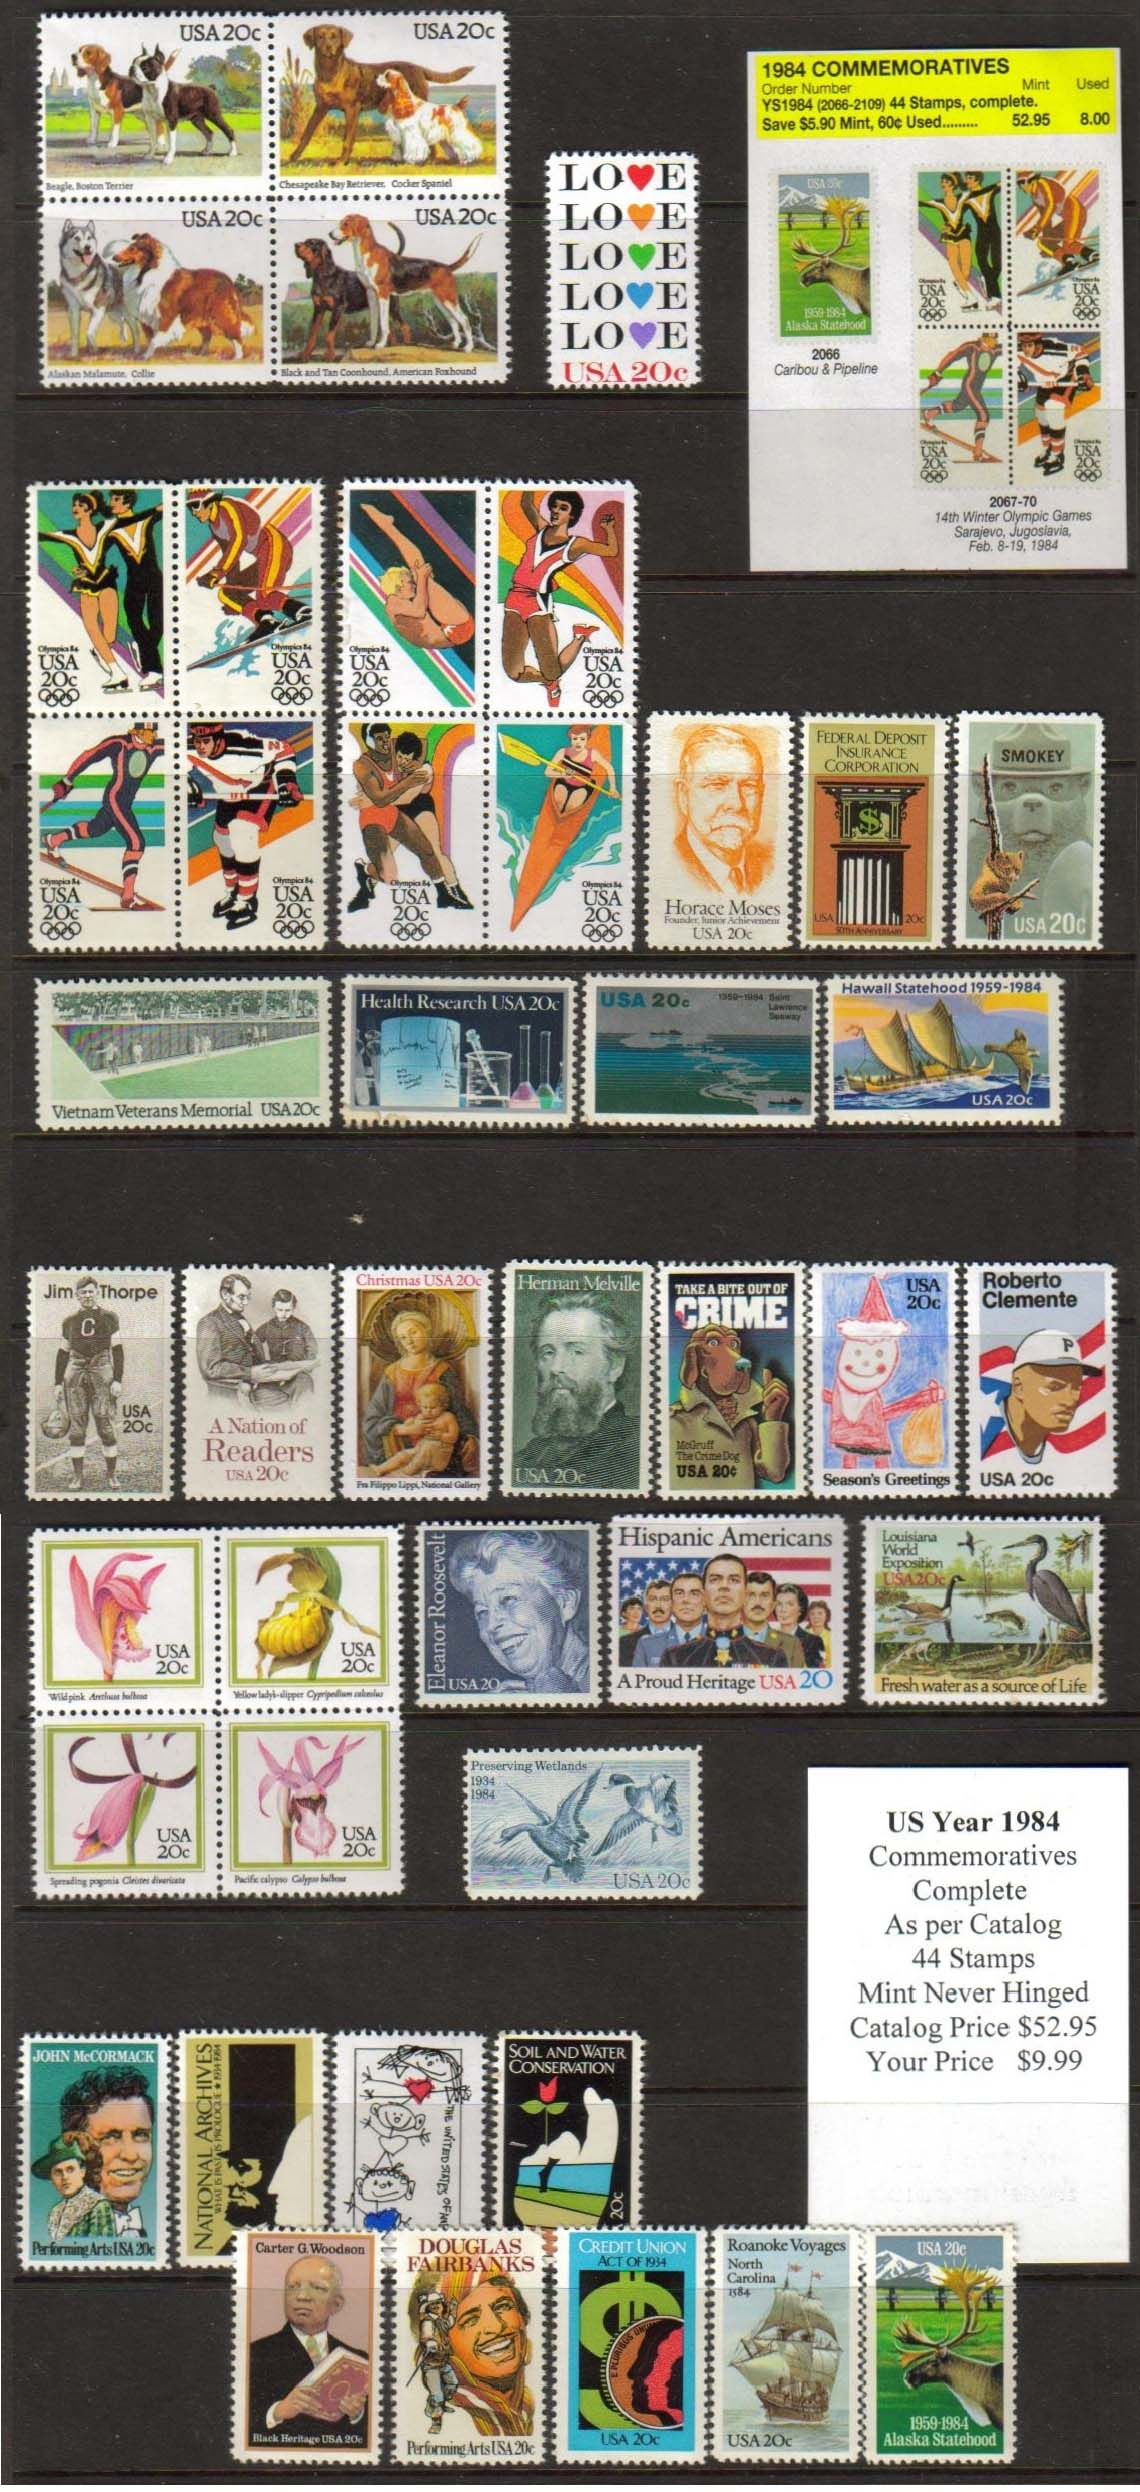 1984 COMMEMORATIVES, 44 STAMPS